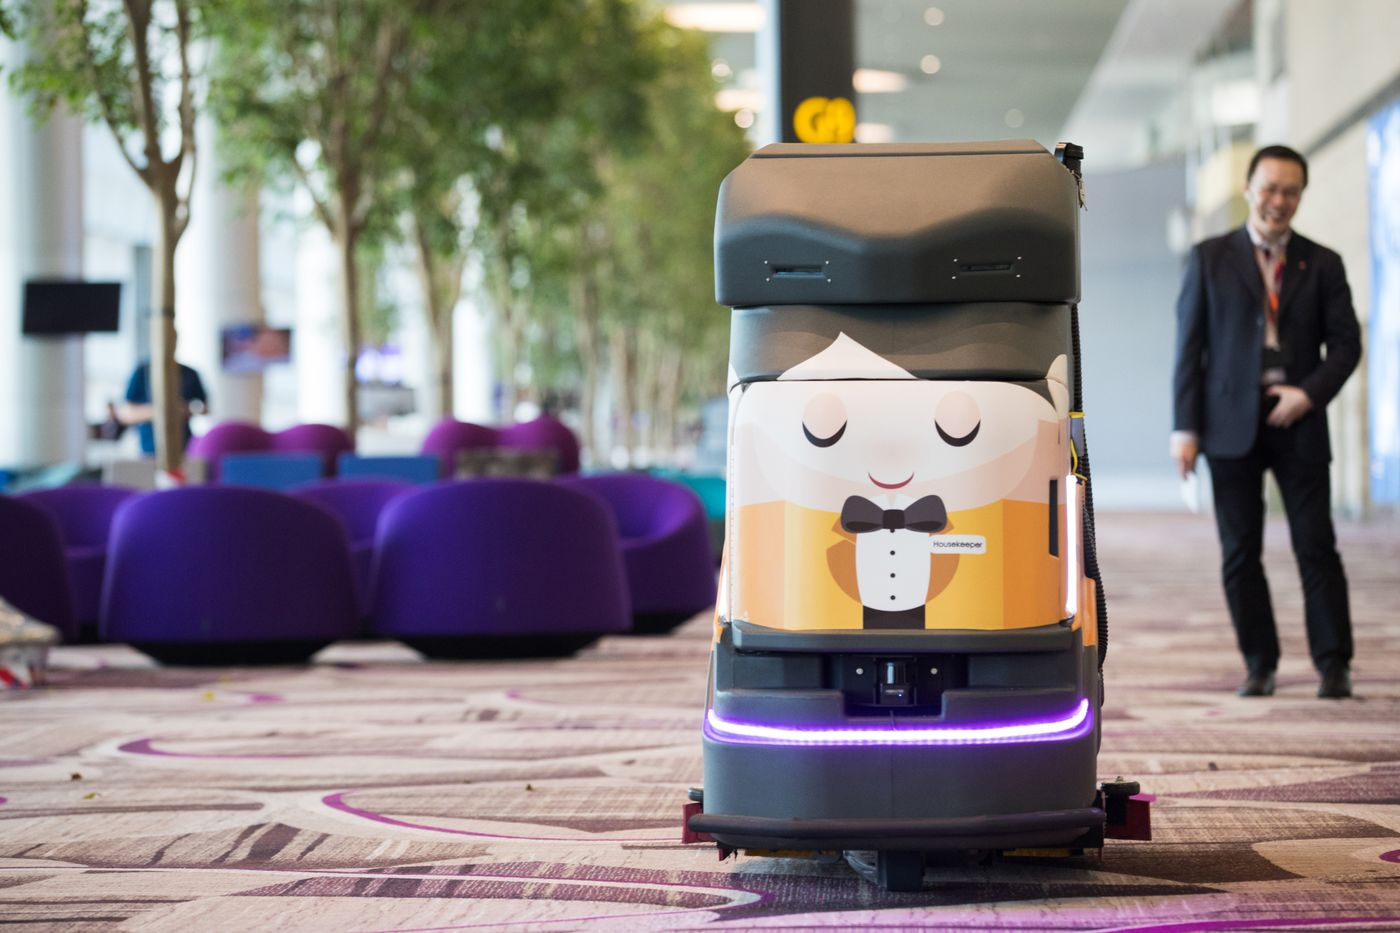 An robotic cleaner in the departure hall of Terminal 4 at Changi Airport. Photographer: Nicky Loh/Bloomberg